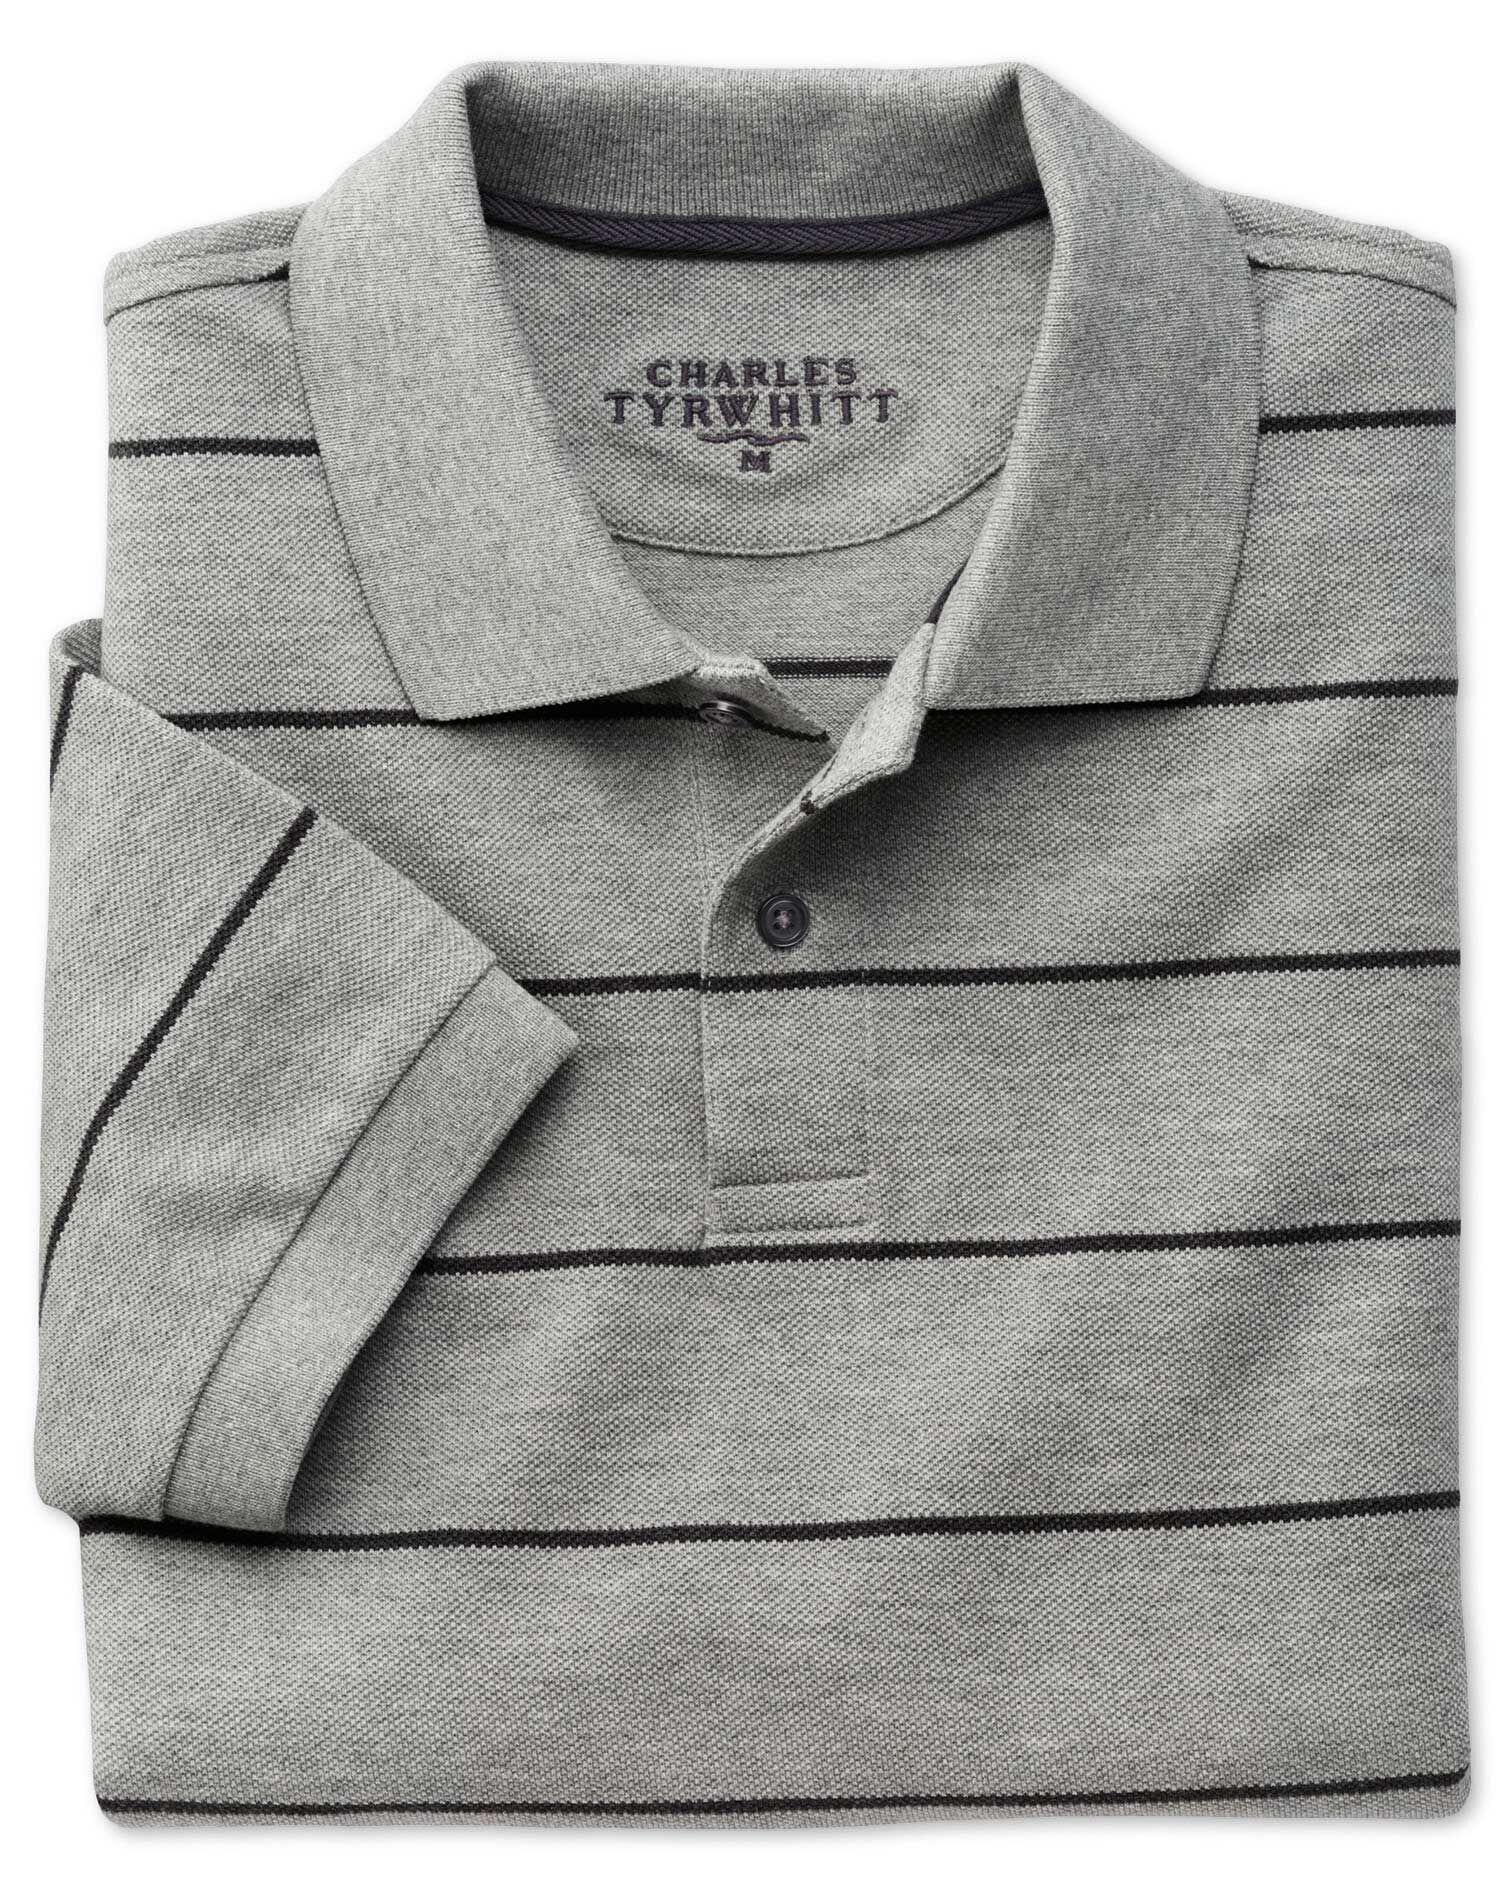 Grey and Charcoal Stripe Pique Cotton Polo Size XXL by Charles Tyrwhitt